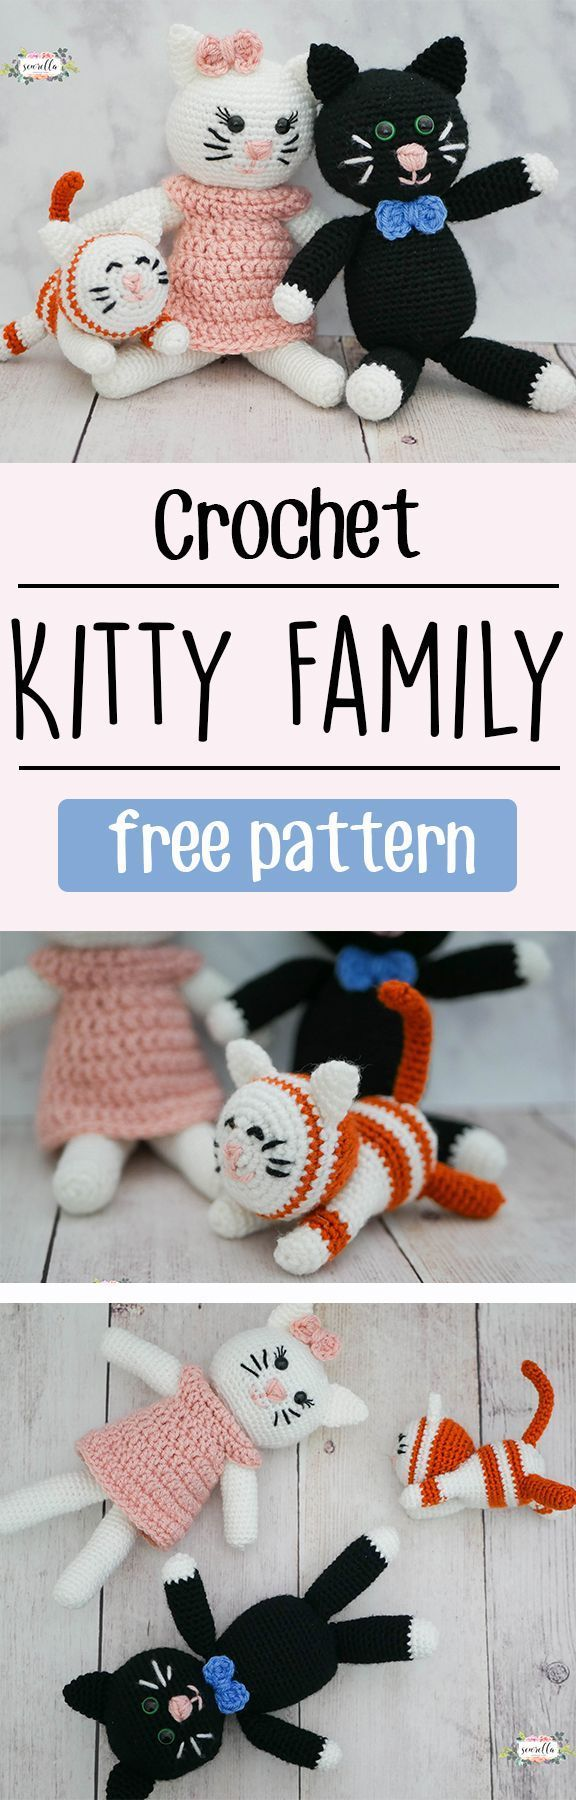 Crochet Kitty Family Babies En Kleine Kinderen Pinterest